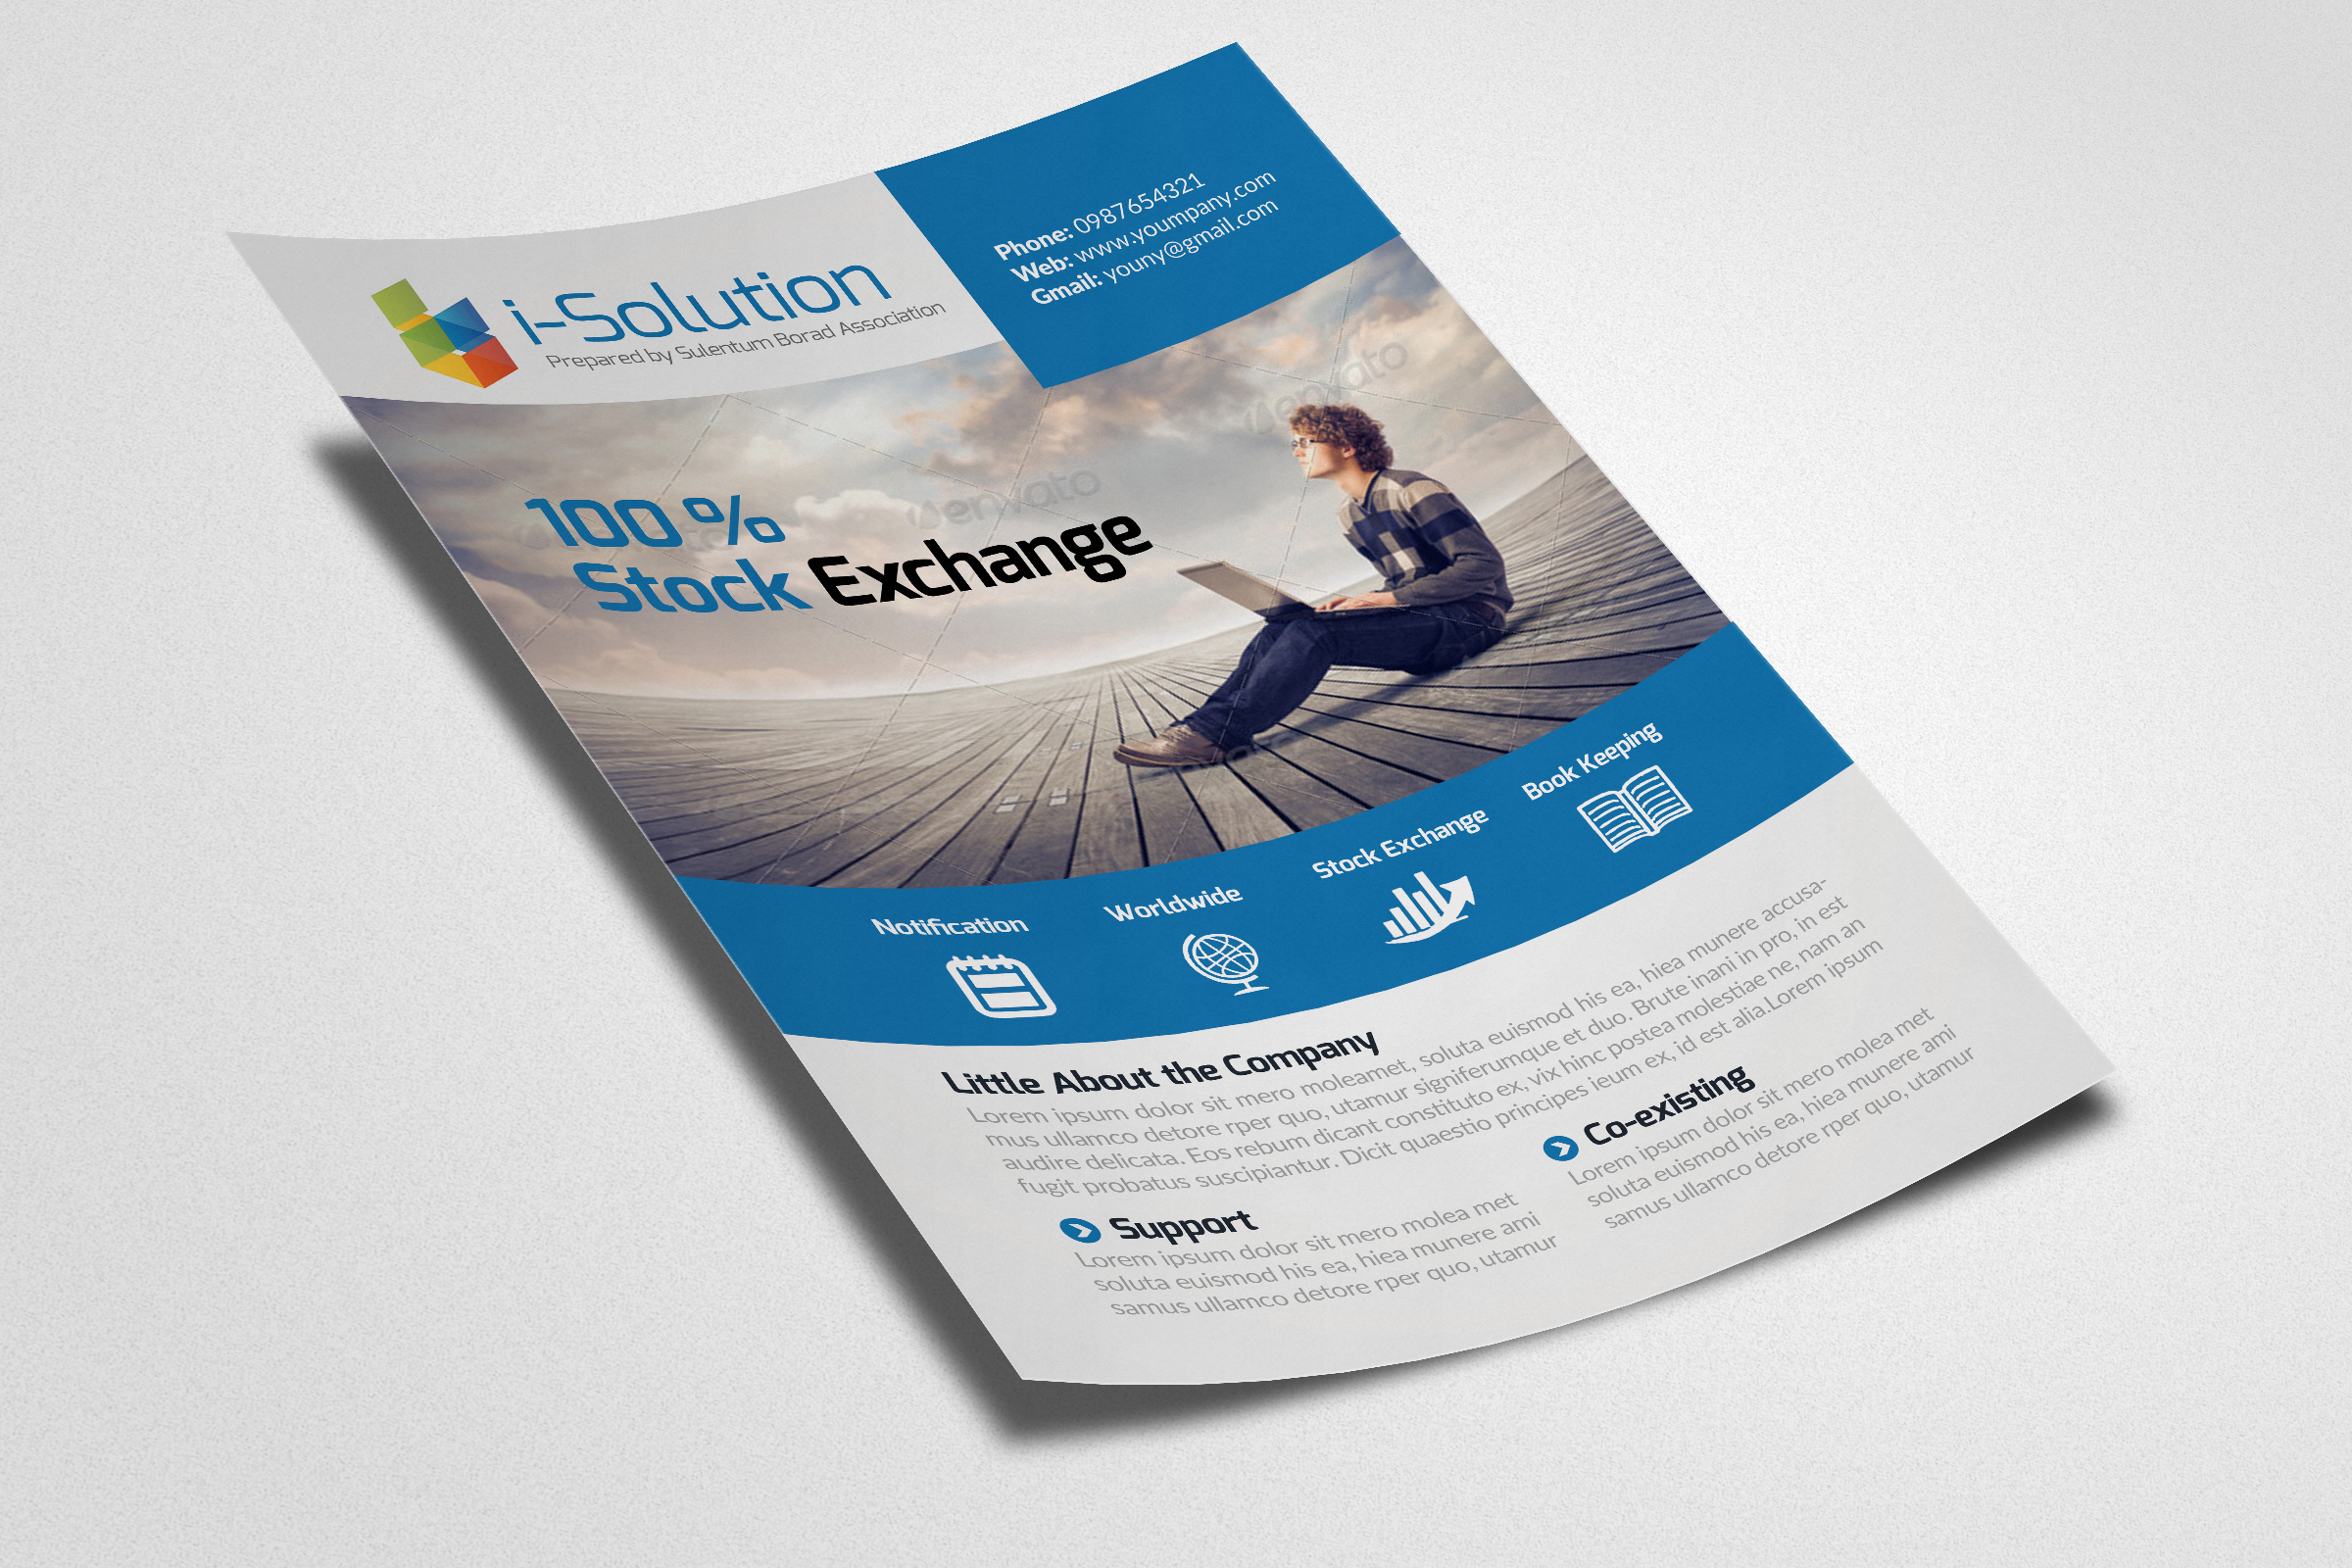 Business Marketing Agency Flyers example image 2